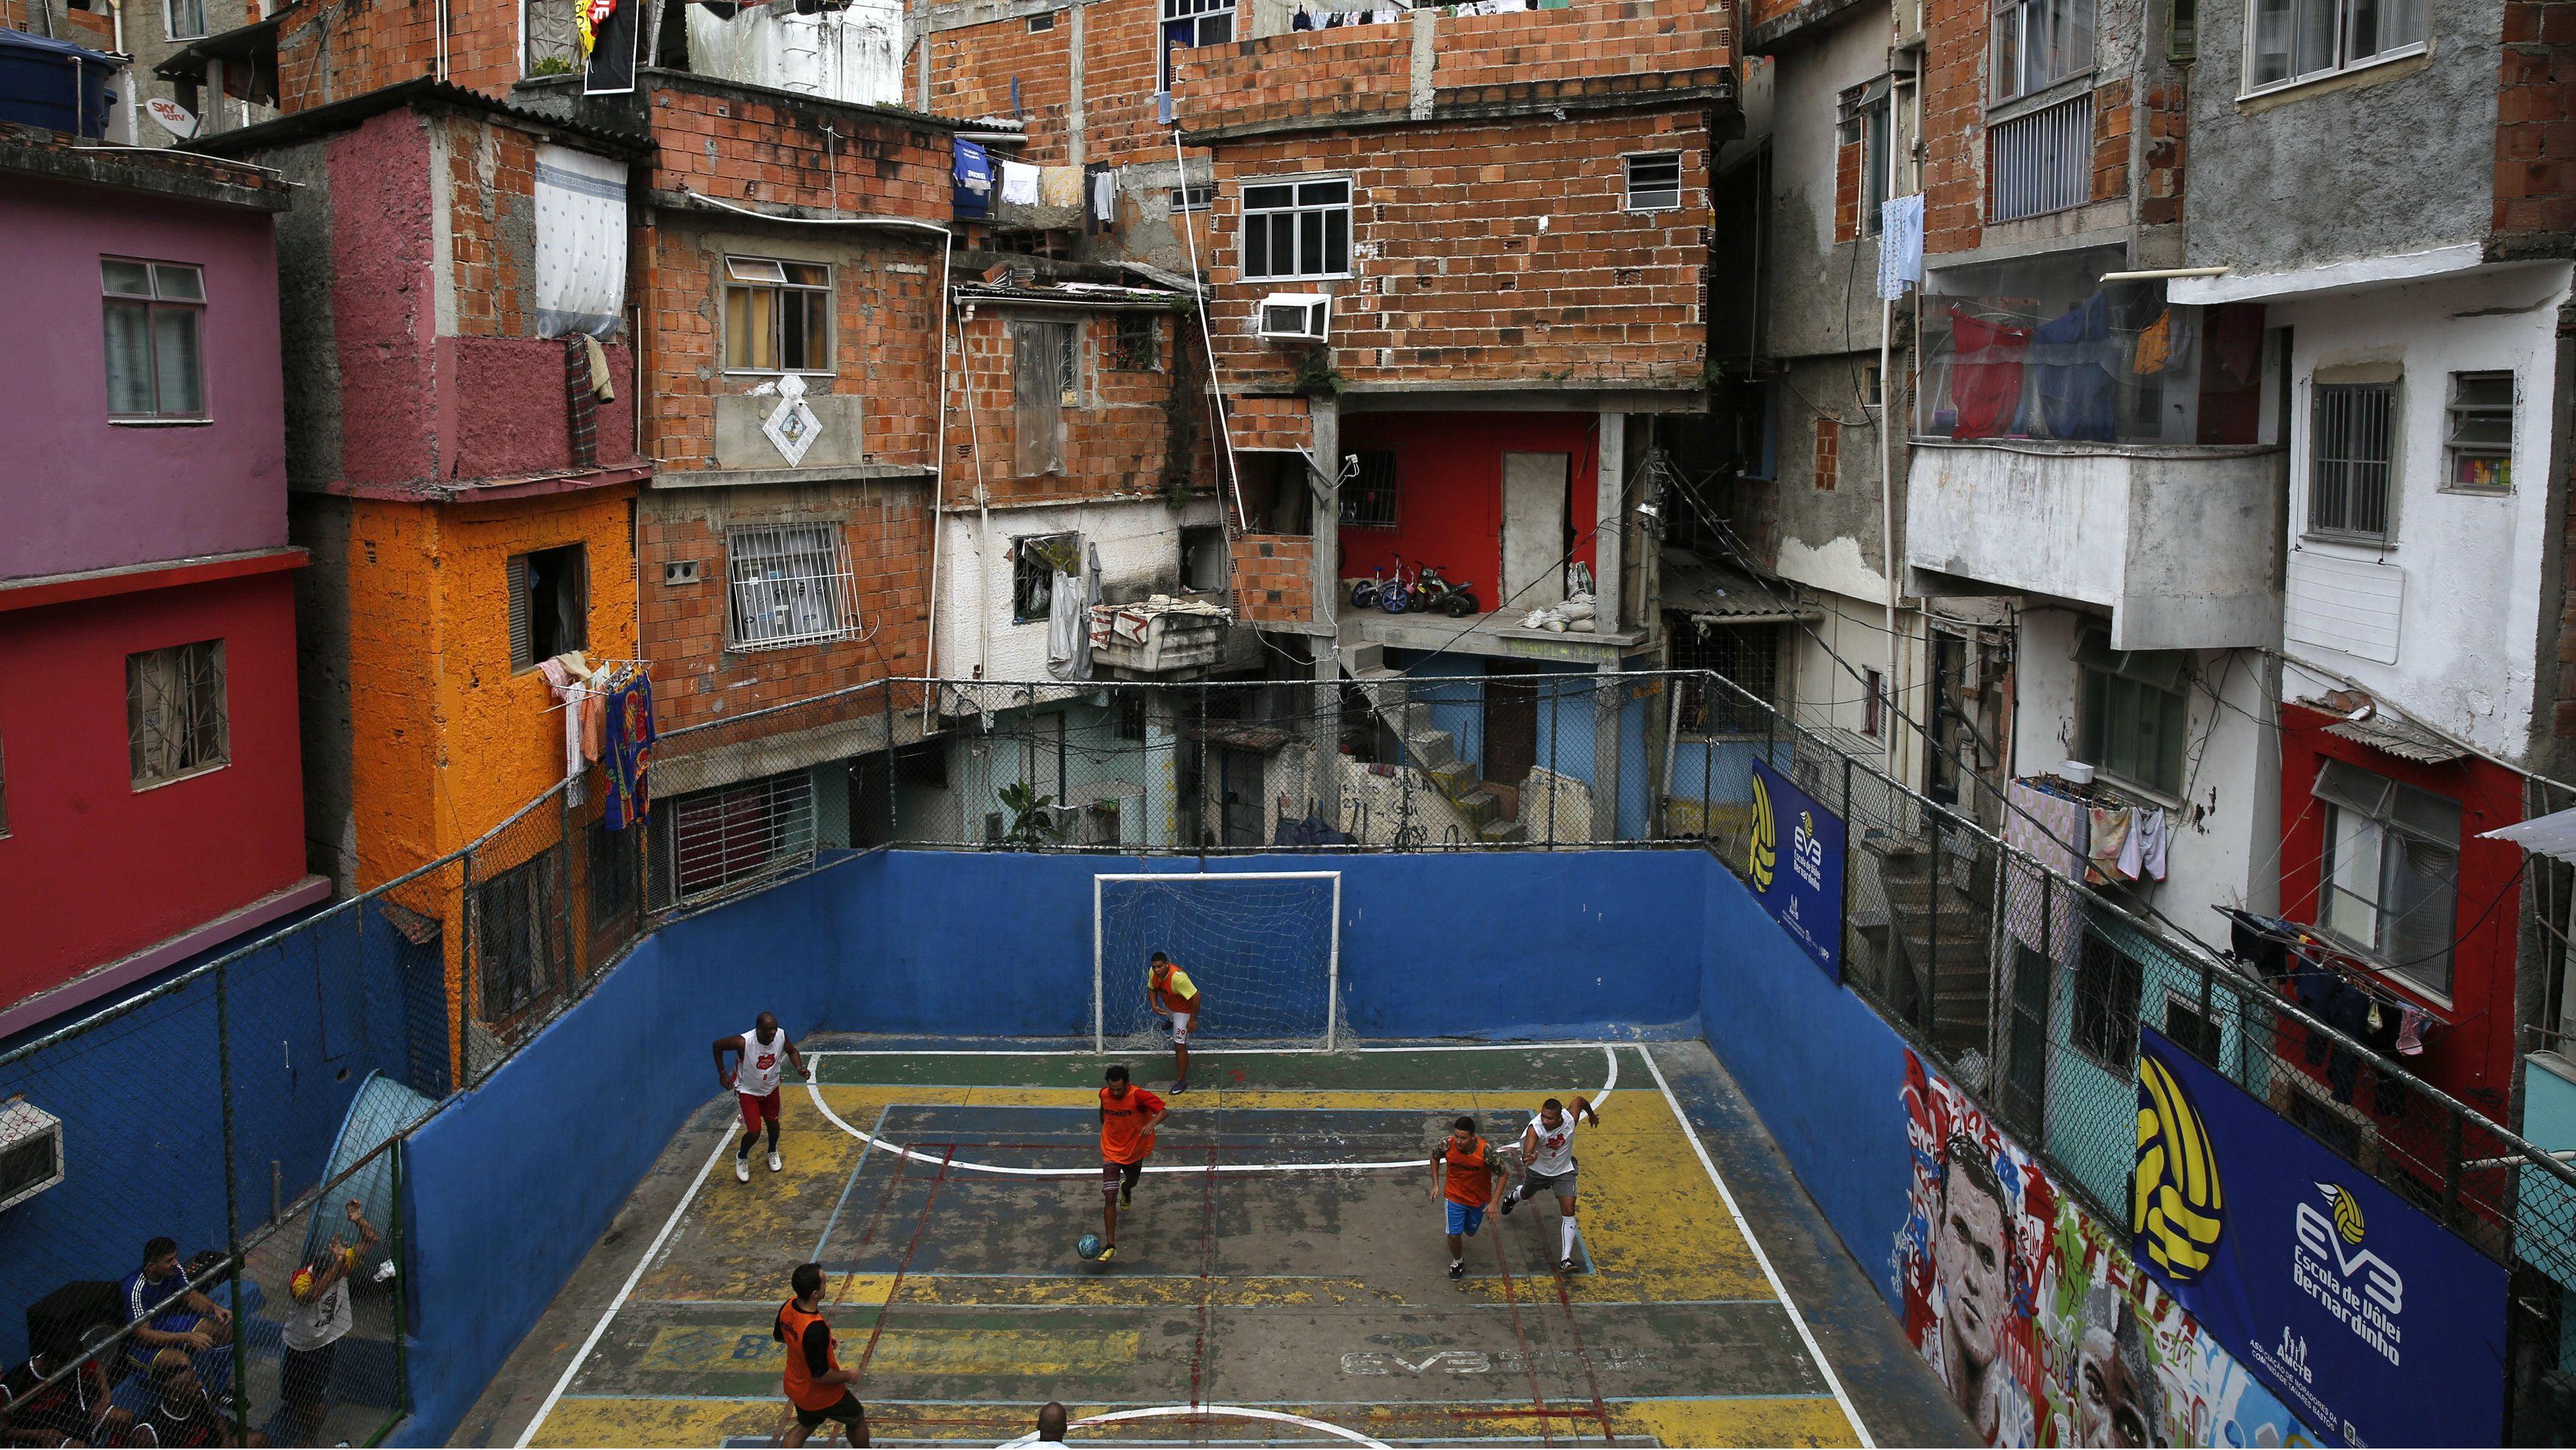 People take part in a soccer match held at the Tavares Bastos slum in Rio de Janeiro May 18, 2014. The World Cup will be held in 12 cities in Brazil from June 12 till July 13. REUTERS/Pilar Olivares (BRAZIL - Tags: SPORT SOCCER TPX IMAGES OF THE DAY)